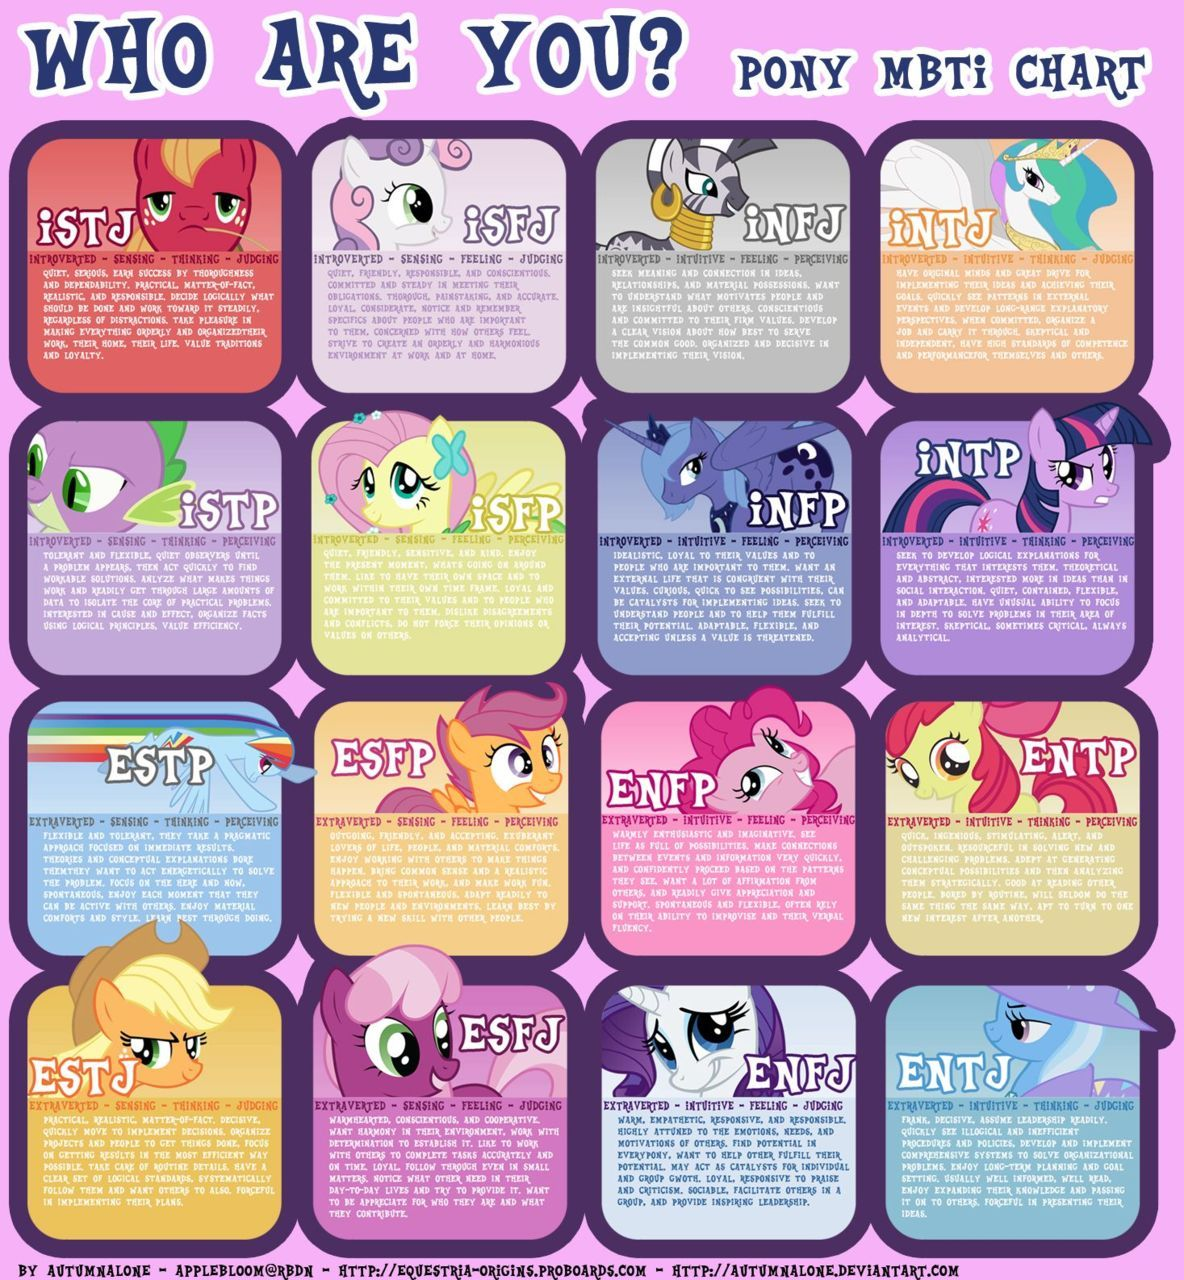 Genoeg 10 Myers-Briggs Type Charts for Pop Culture Characters  QY32